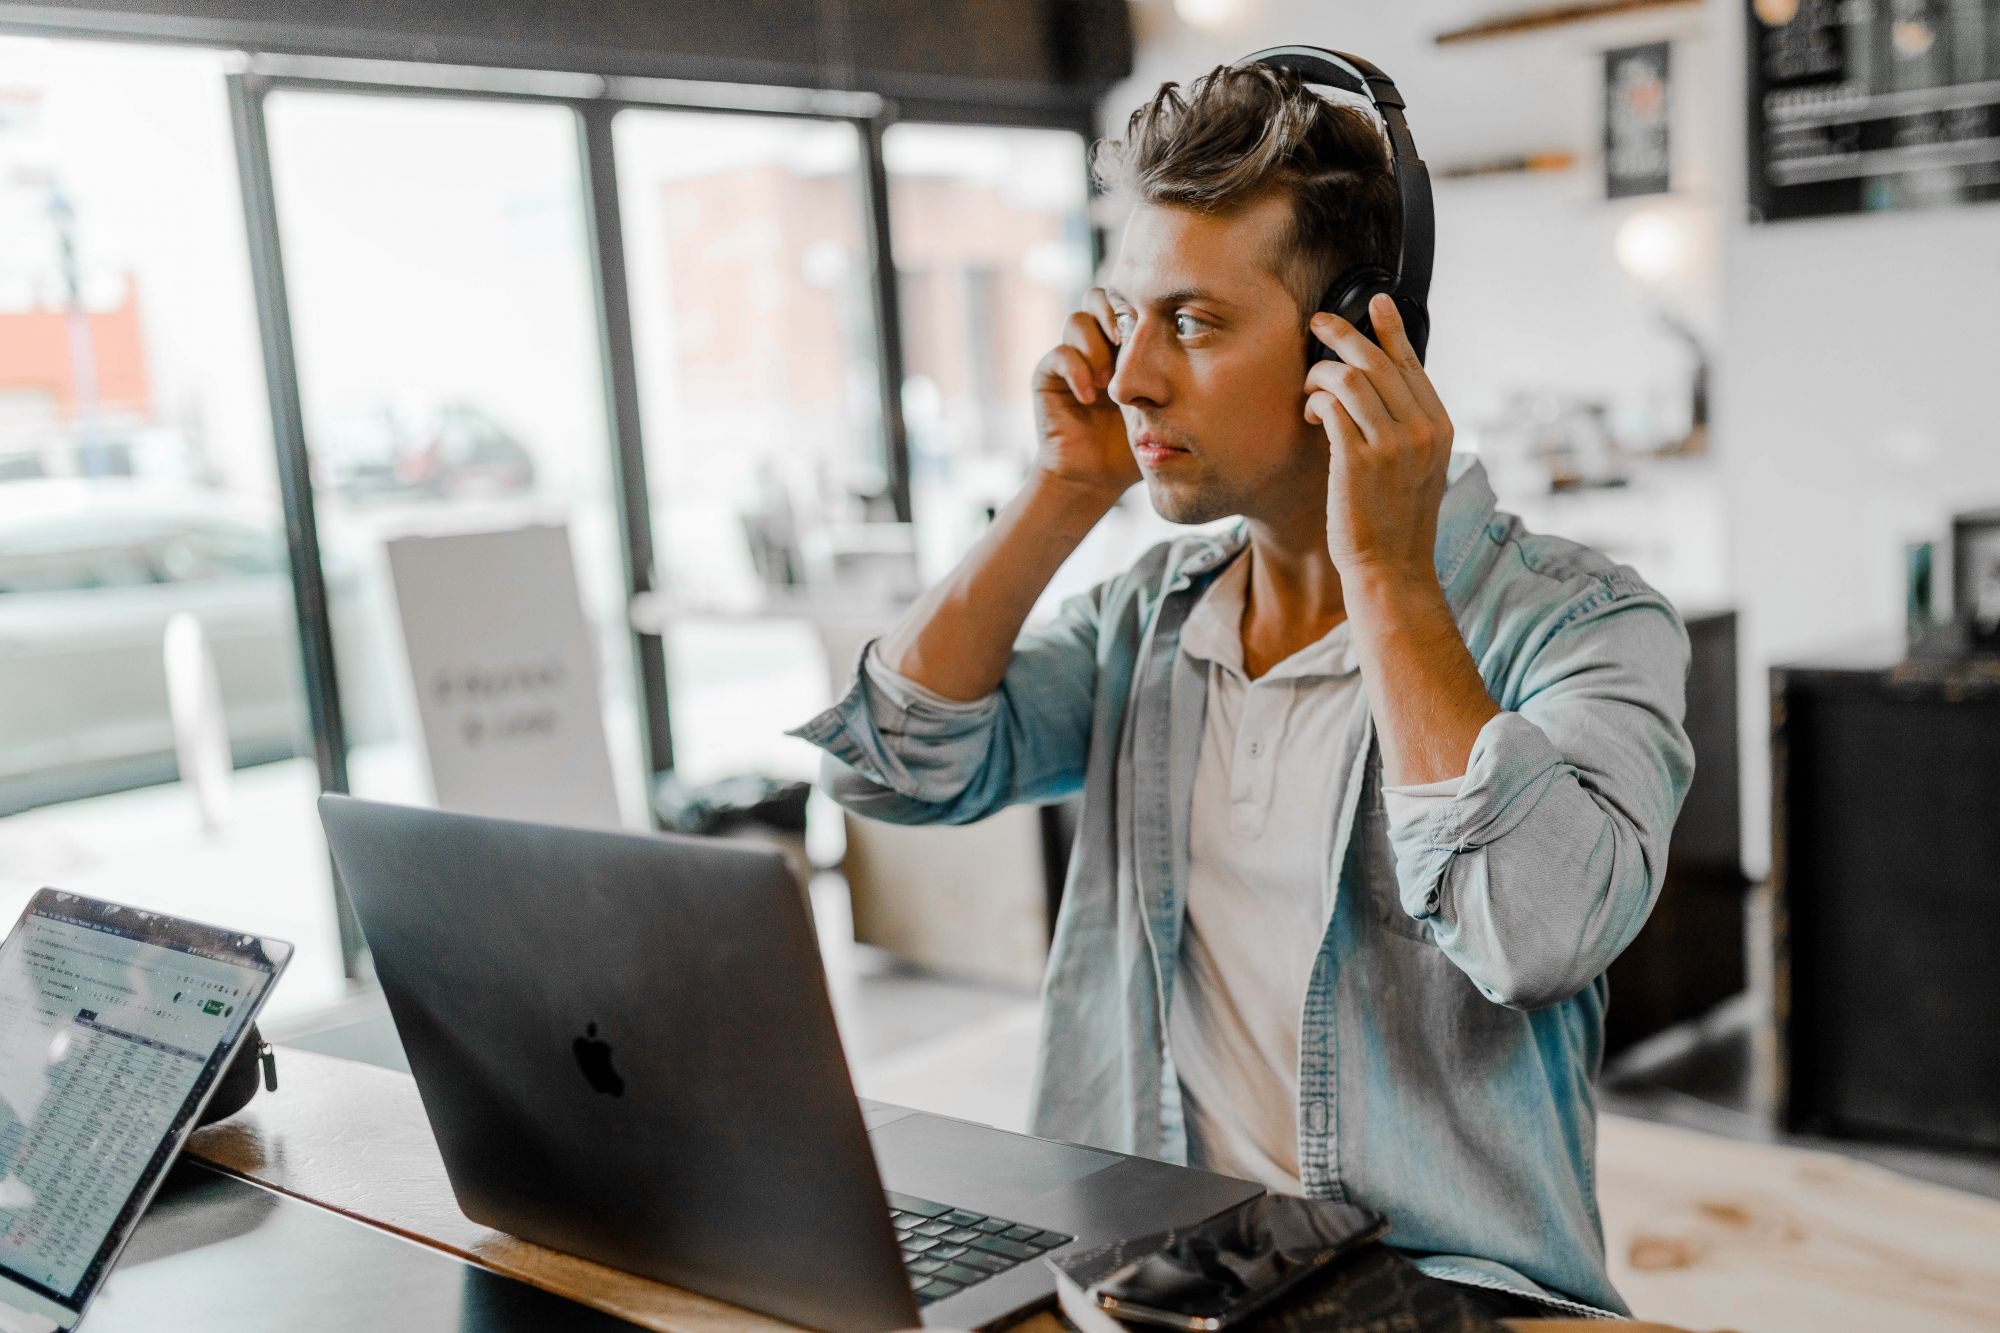 4 Impressive Noise-Cancelling Headphones To Keep You Focused